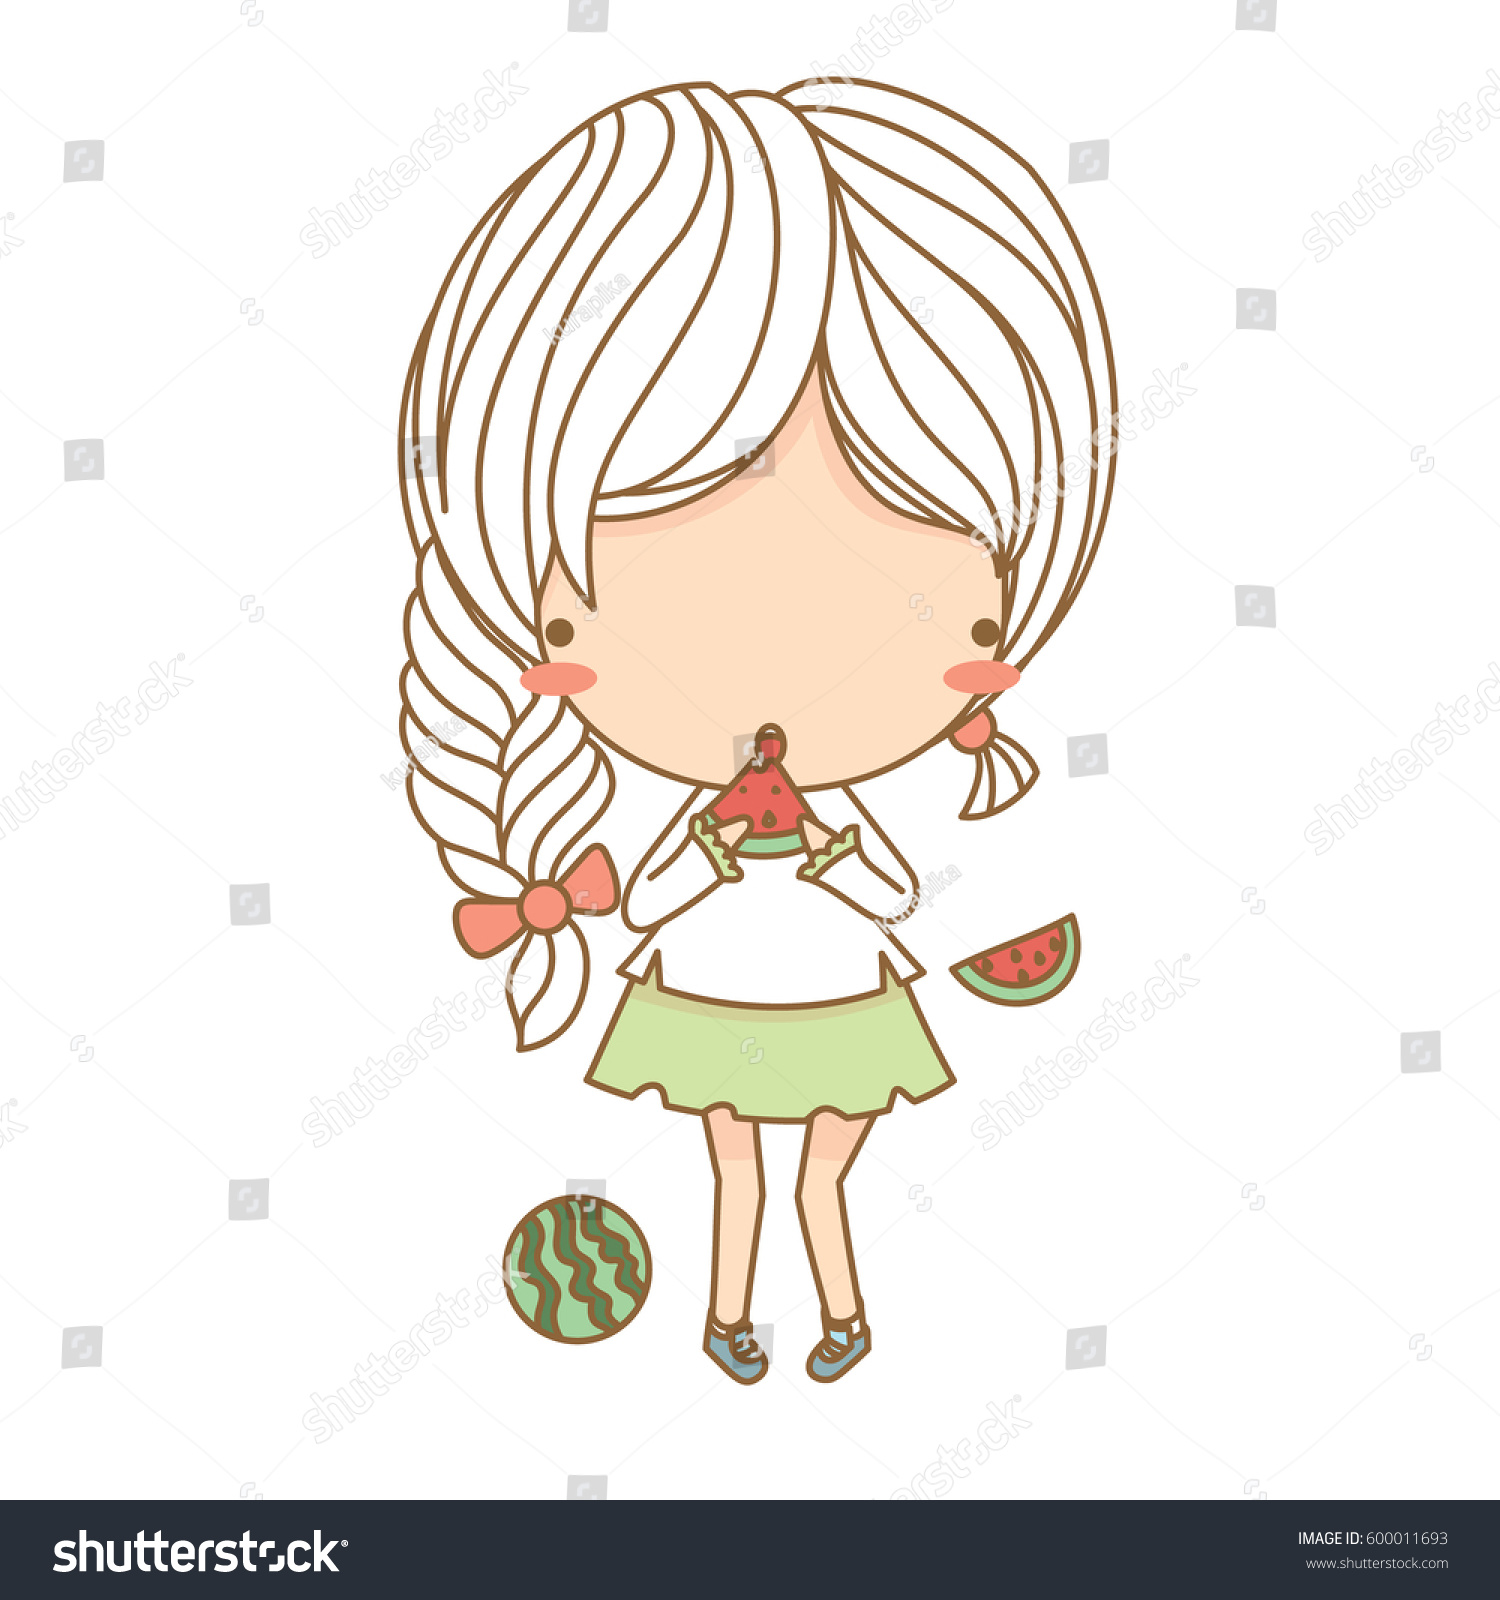 Cute Character Design Illustrator : Cute little girl eating watermelon vector stock